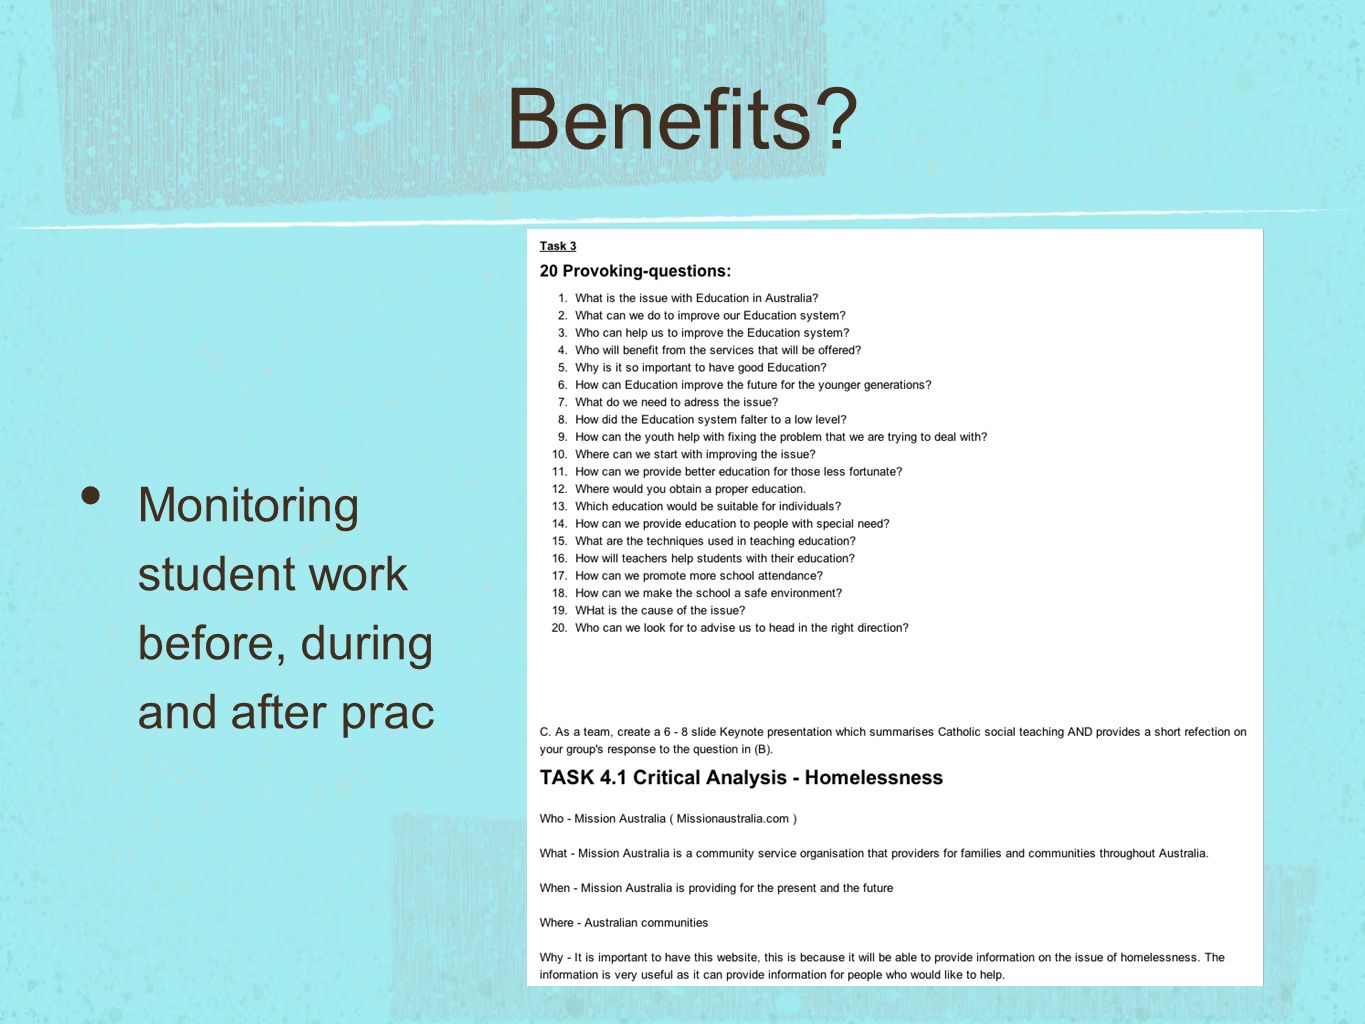 Benefits Monitoring student work before, during and after prac